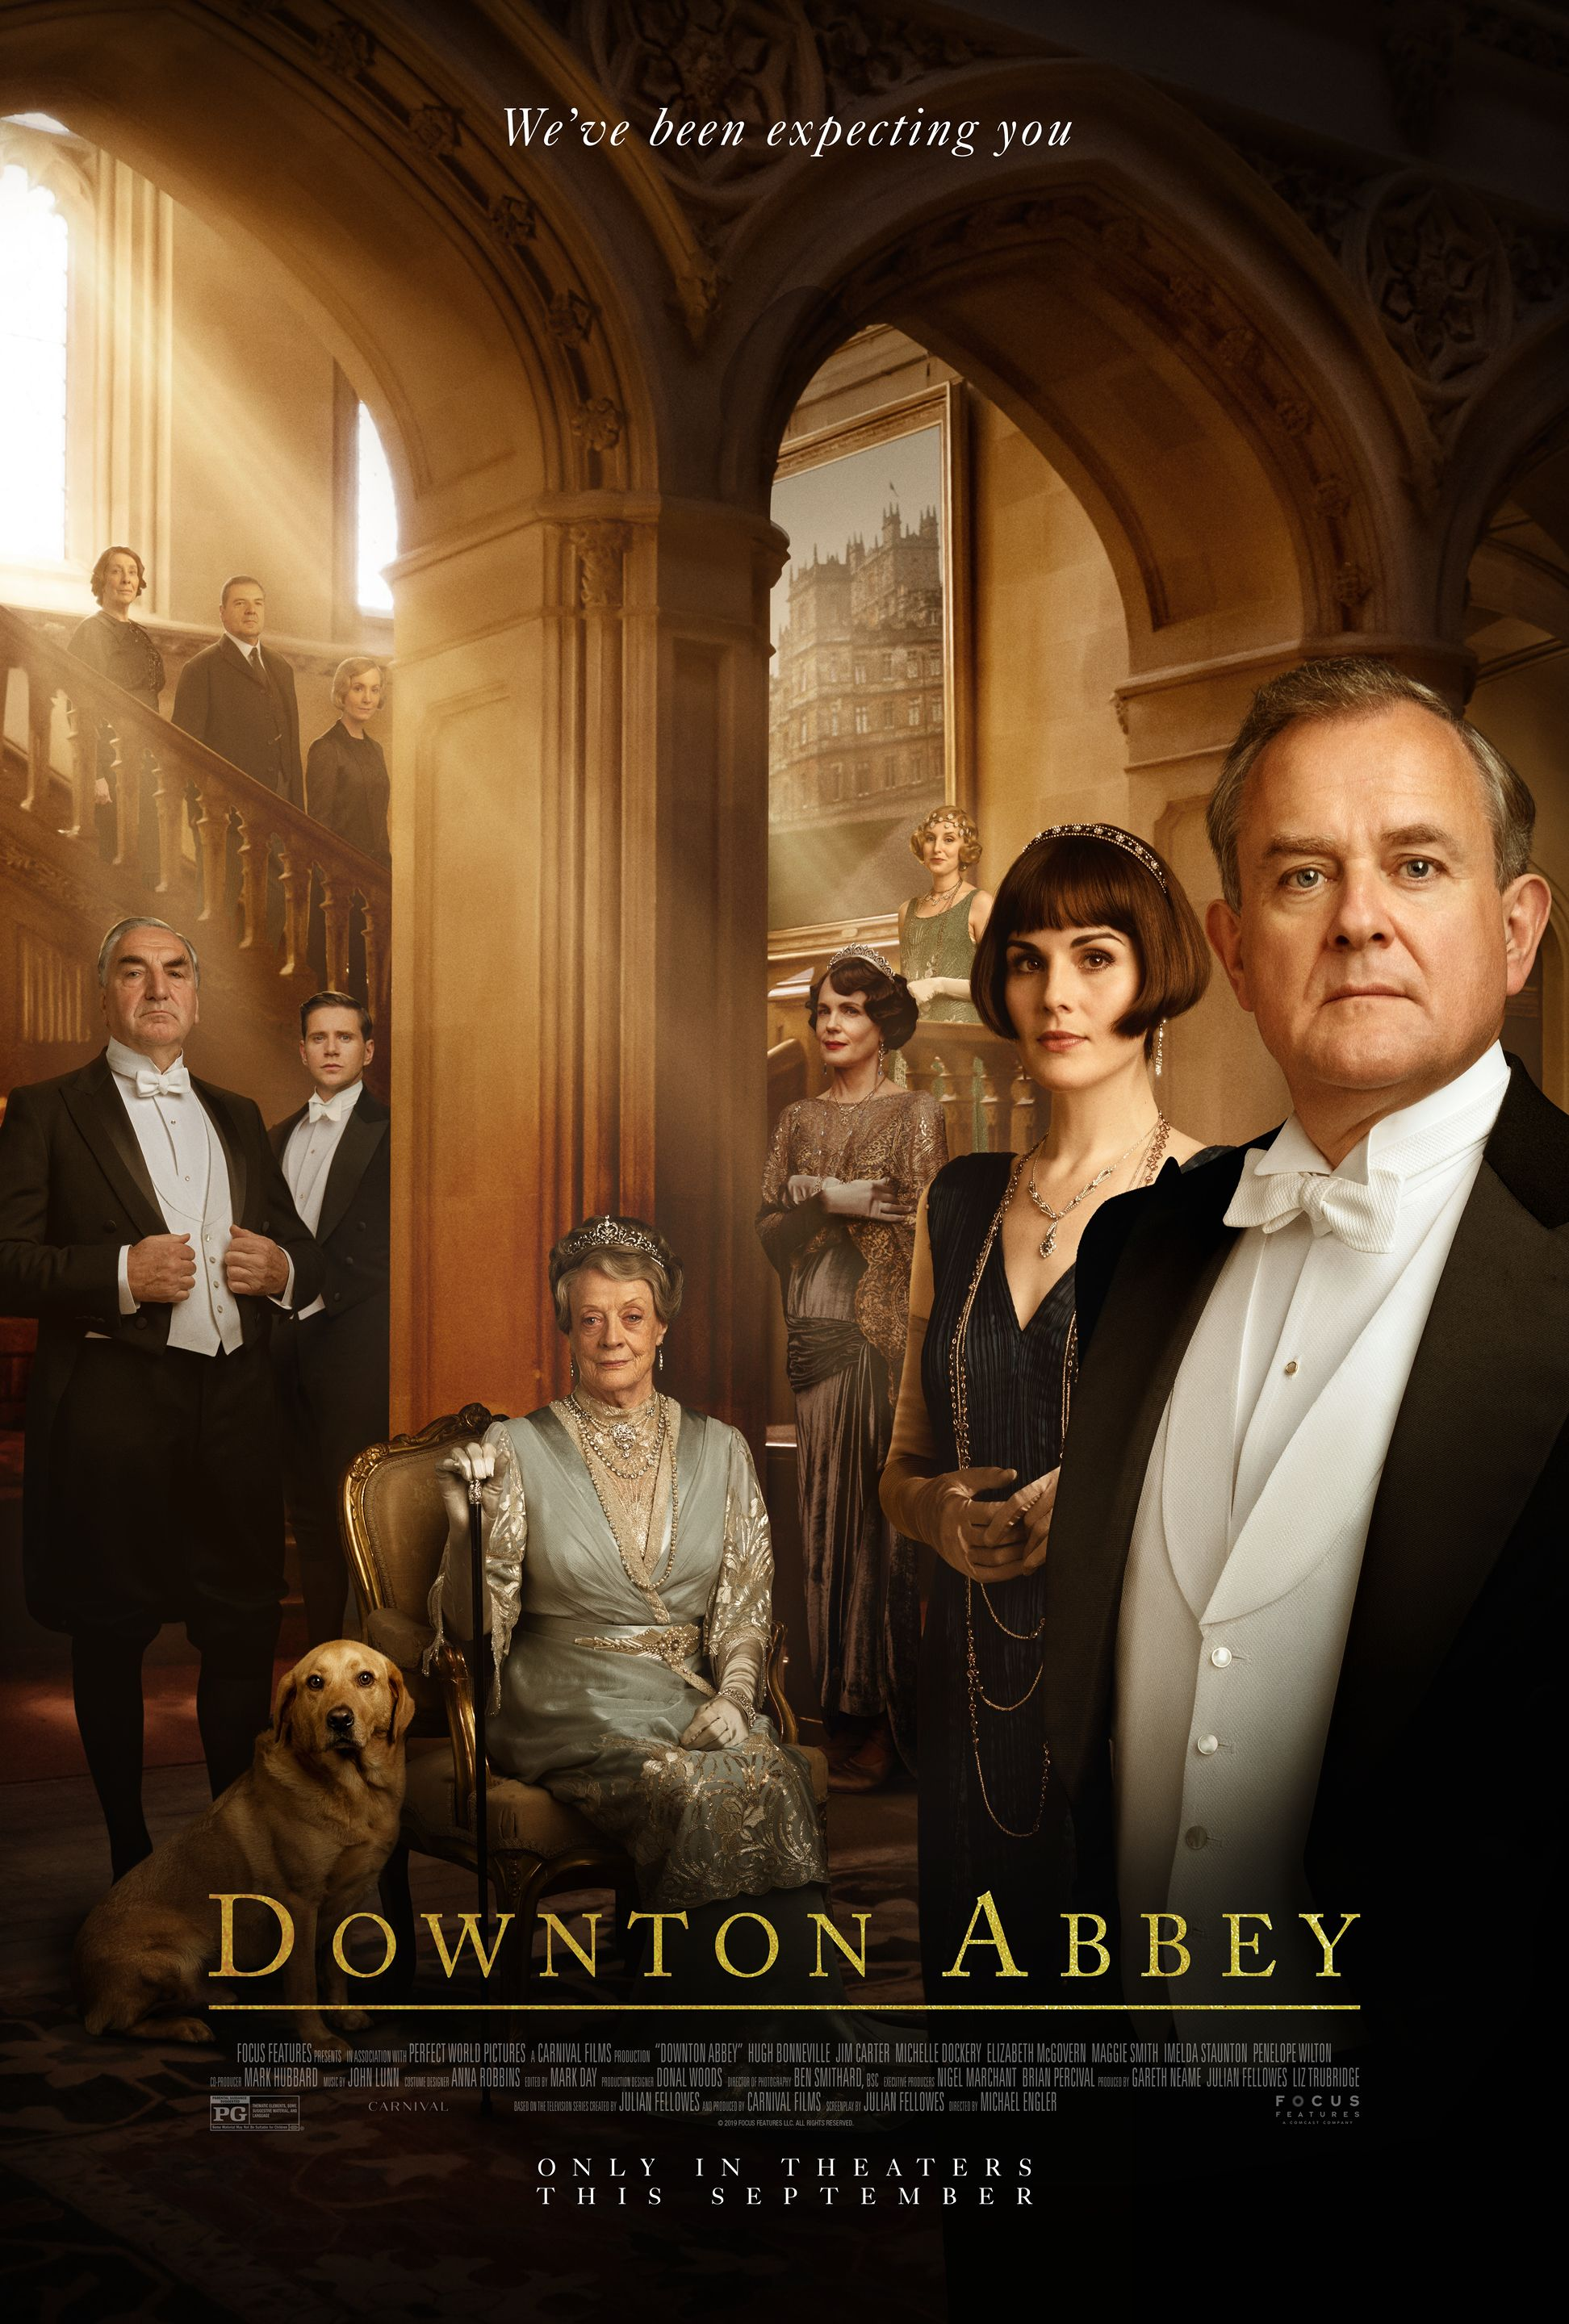 A New Downton Abbey Trailer Has Arrived. Watch It Here.